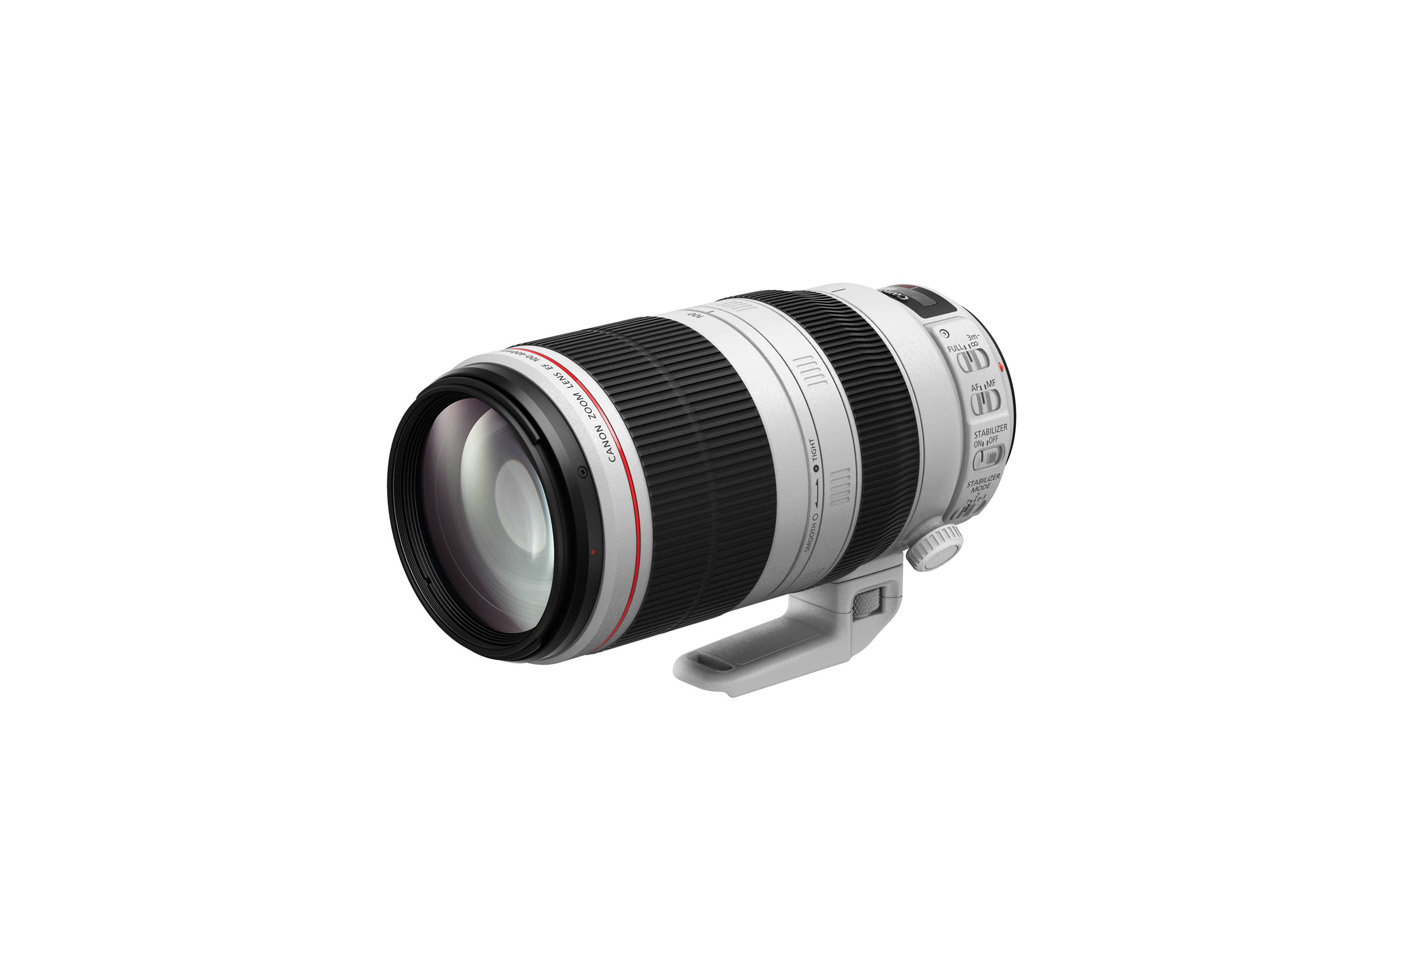 لنز Canon EF 100-400mm f/4.5-5.6 L IS USM II